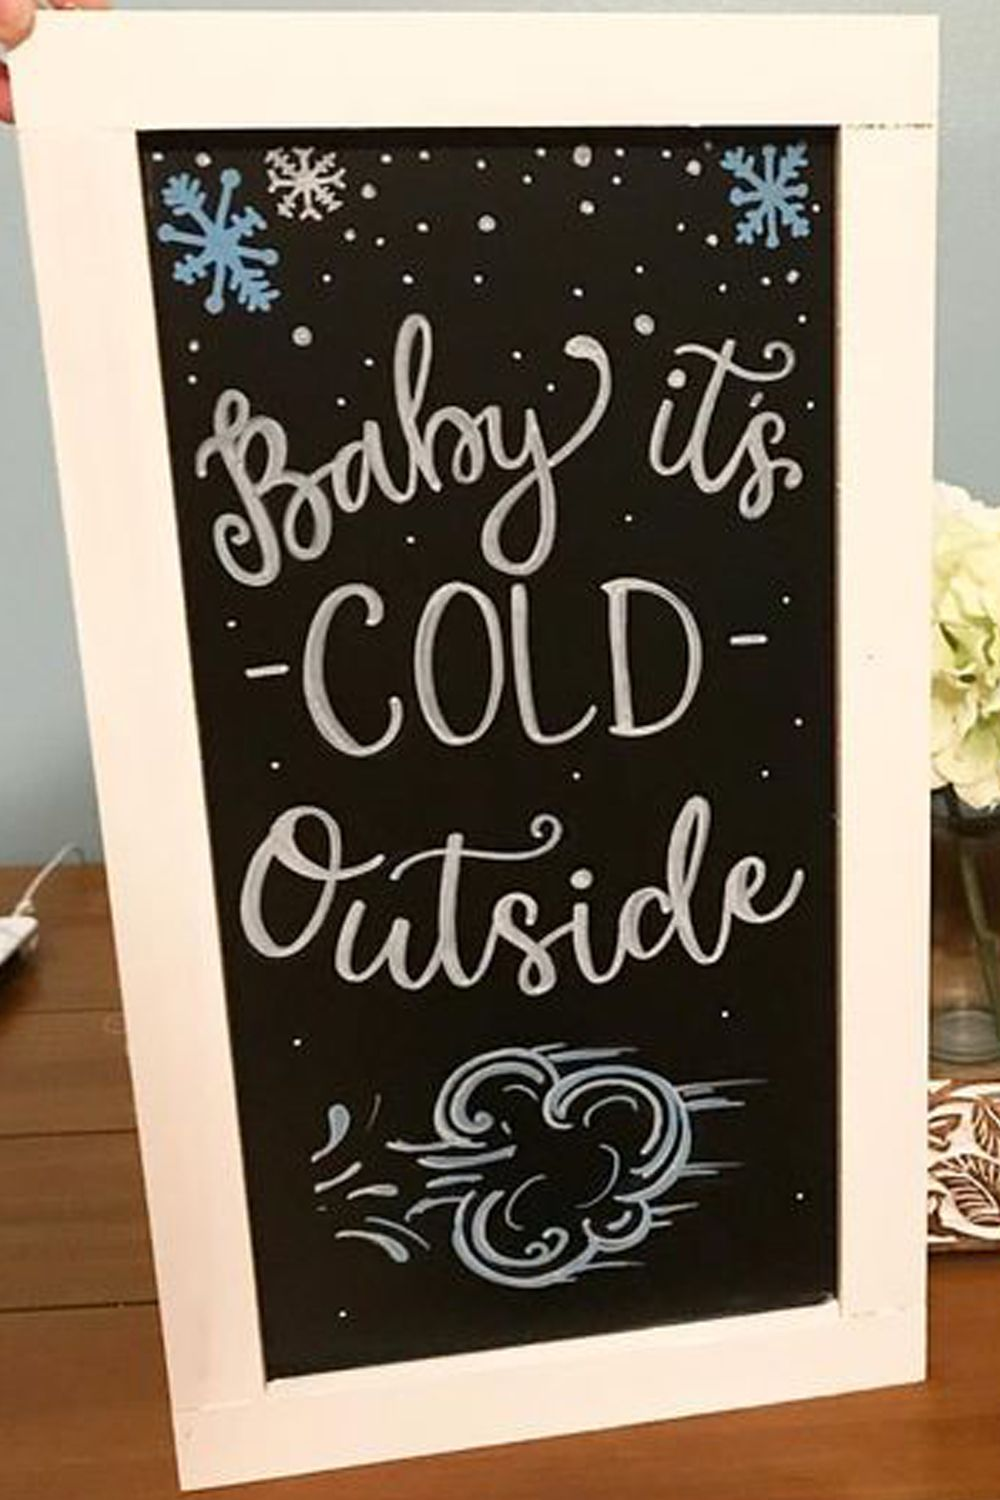 A chalkboard tribute to Idina Menzel & Michael Bublé hit song Baby It's Cold Outside. When the ...